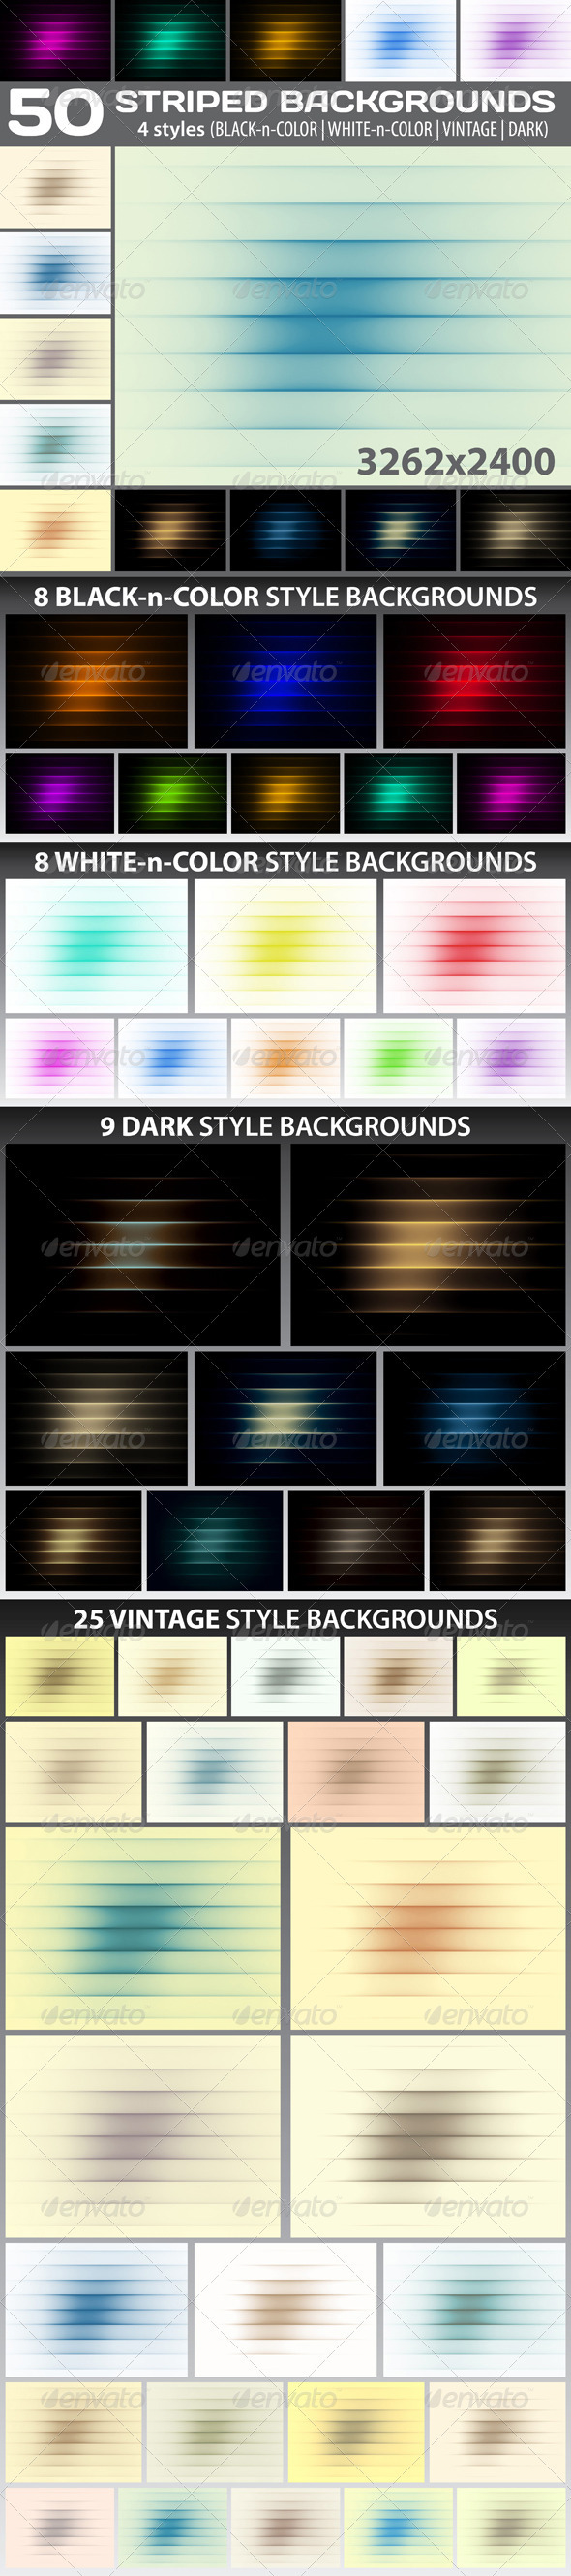 50 Striped Backgrounds - Abstract Backgrounds